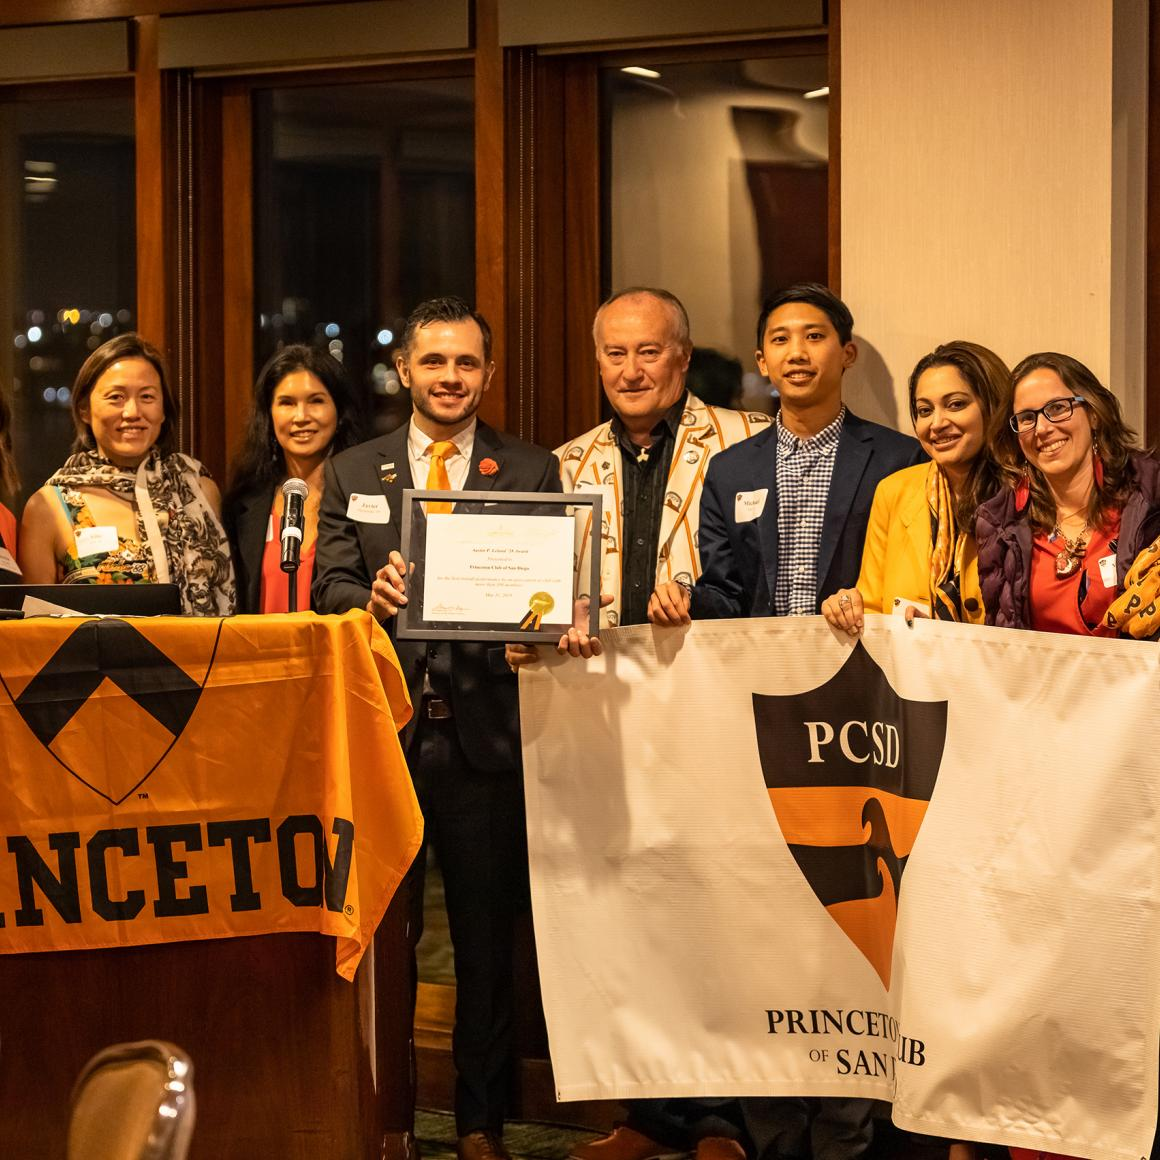 San Diego Princeton Club Award celebration